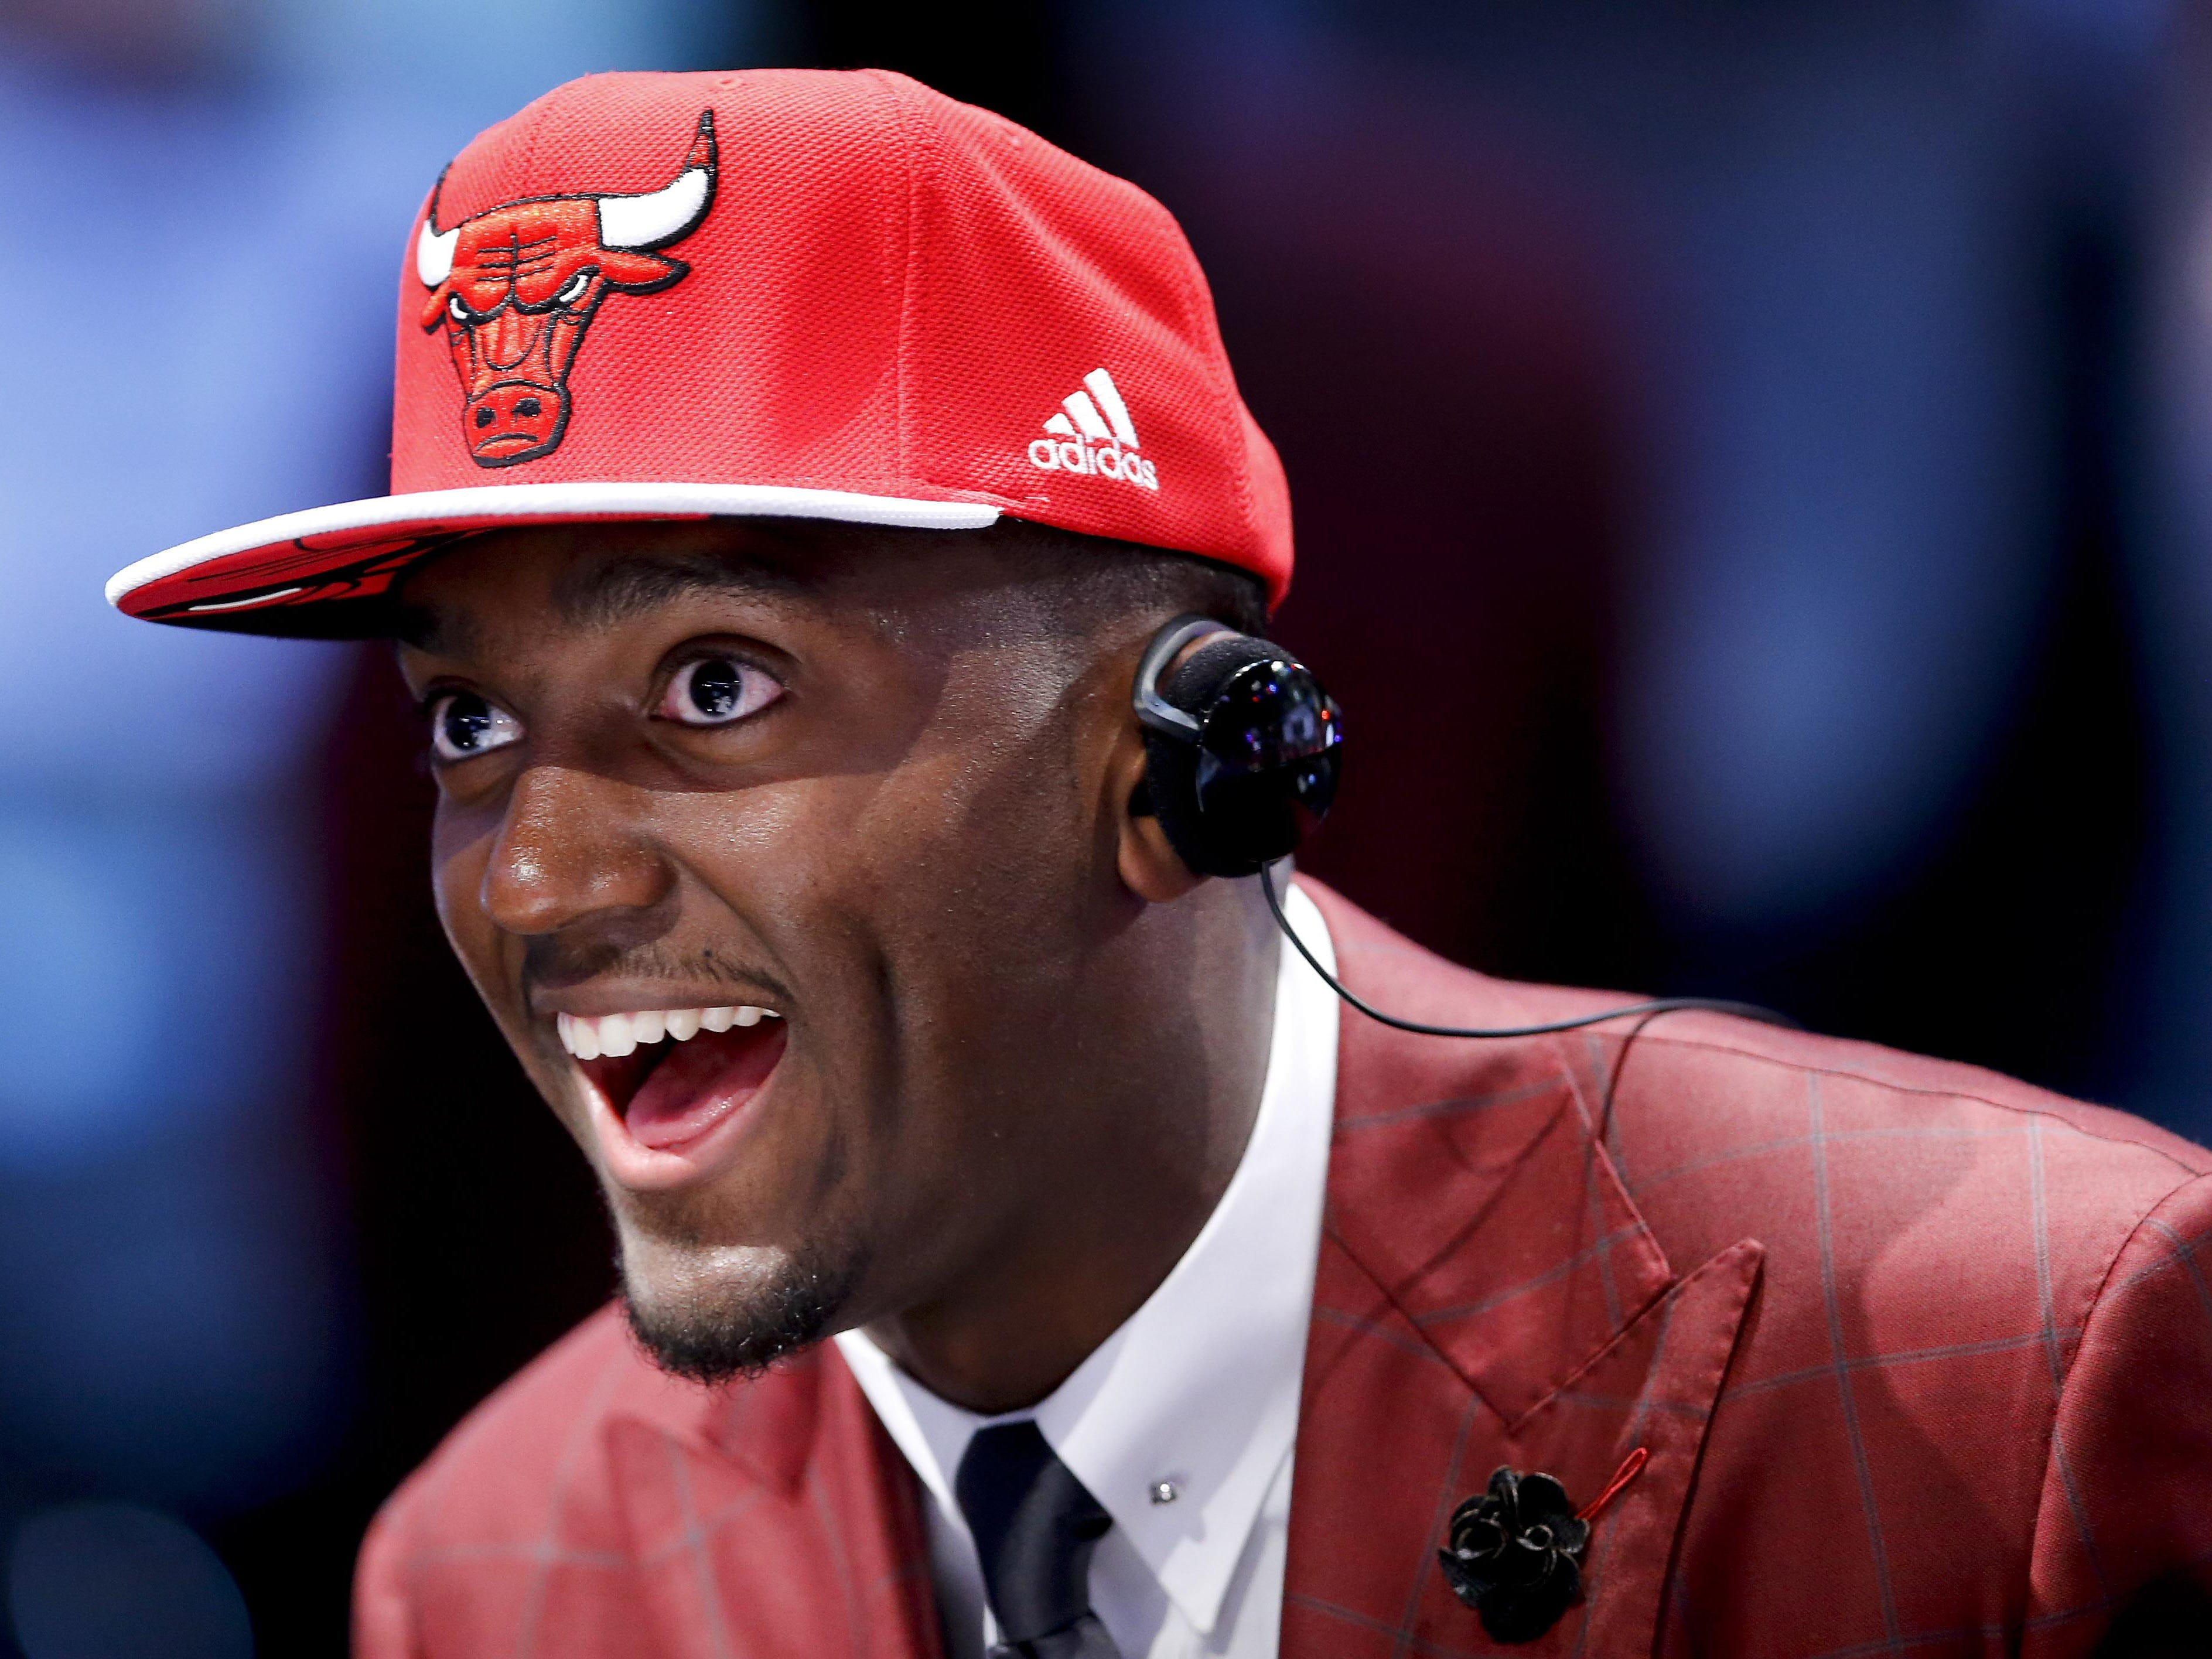 Bobby Portis answers questions during an interview after being selected 22nd overall by the Chicago Bulls during the NBA draft Thursday in New York.